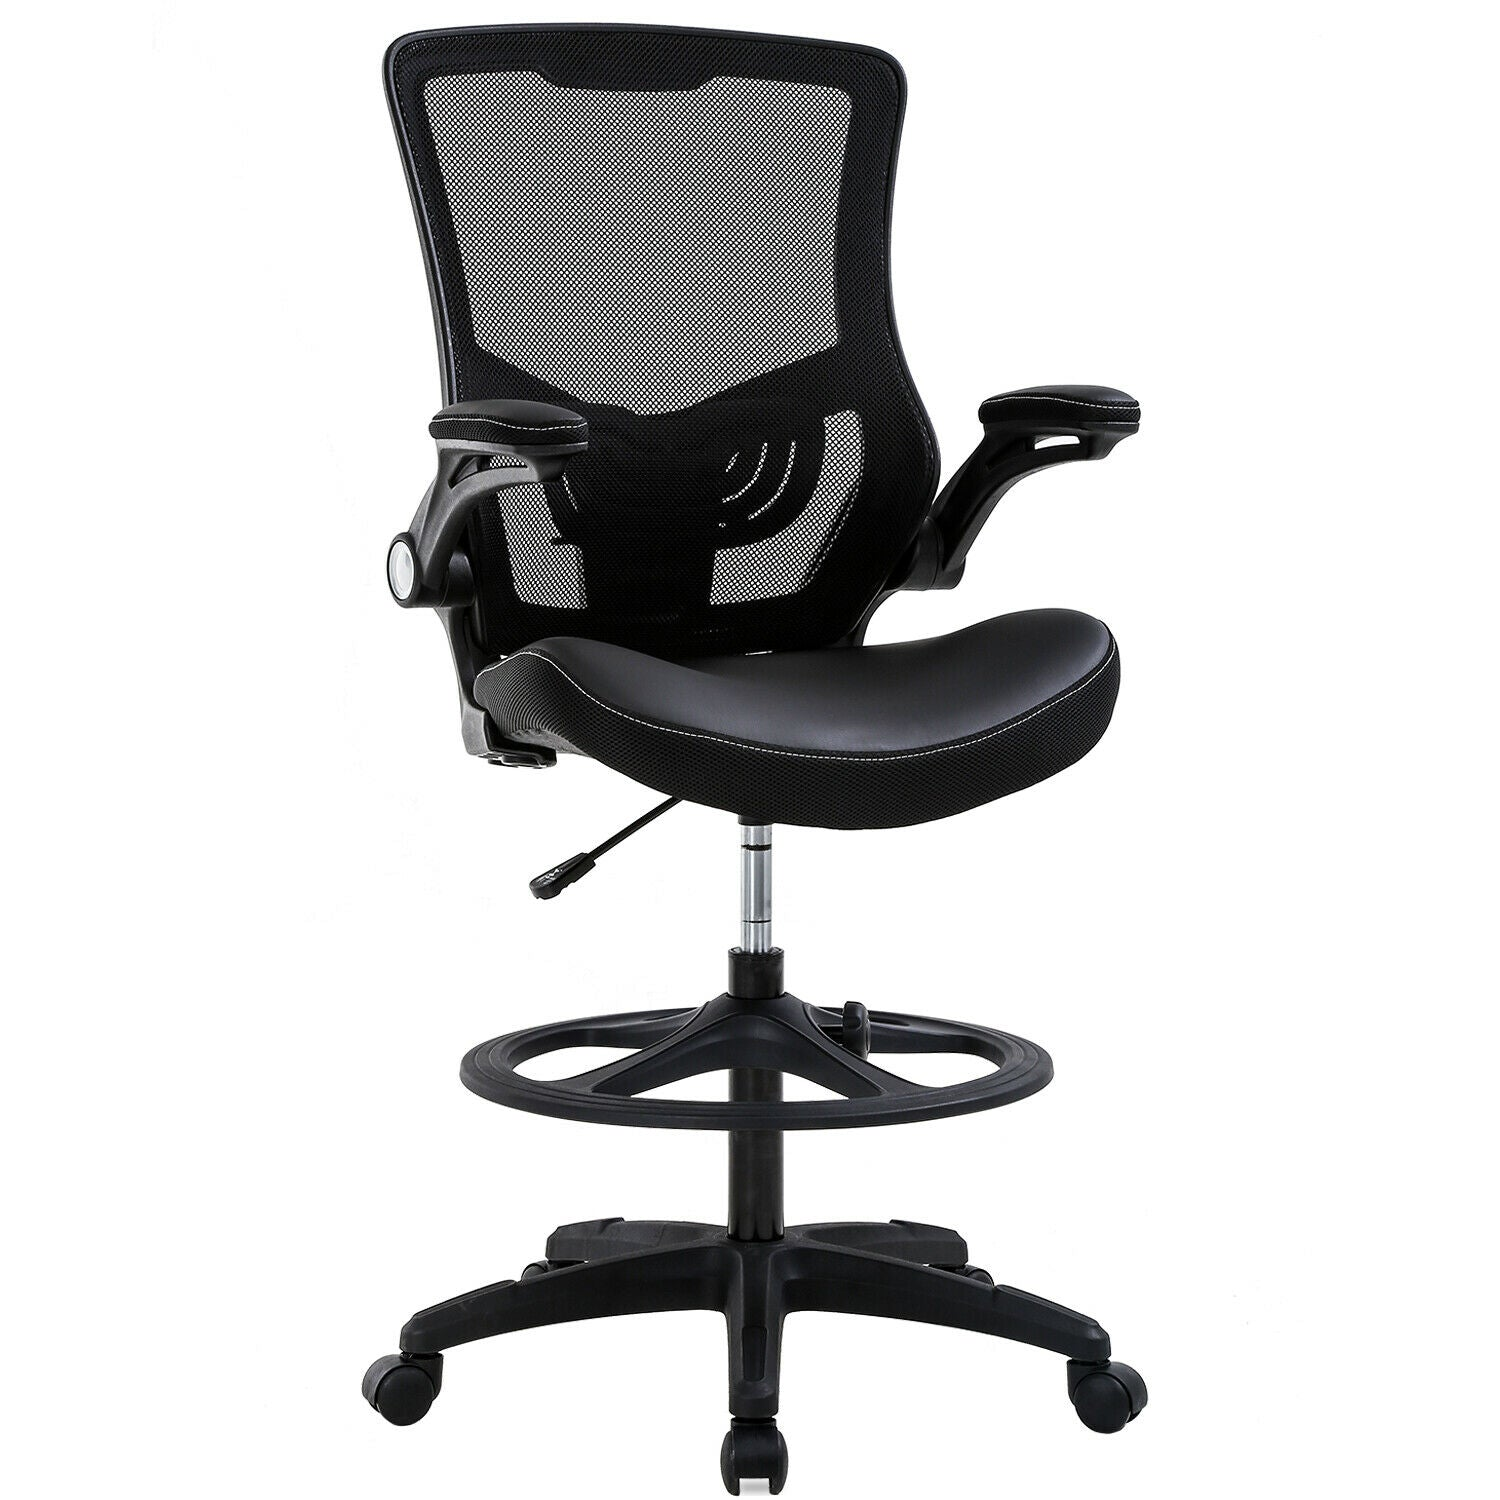 Drafting Chair Ergonomic Tall Office Chair with Flip Up Arms Foot Rest Back Support Adjustable Height , Black